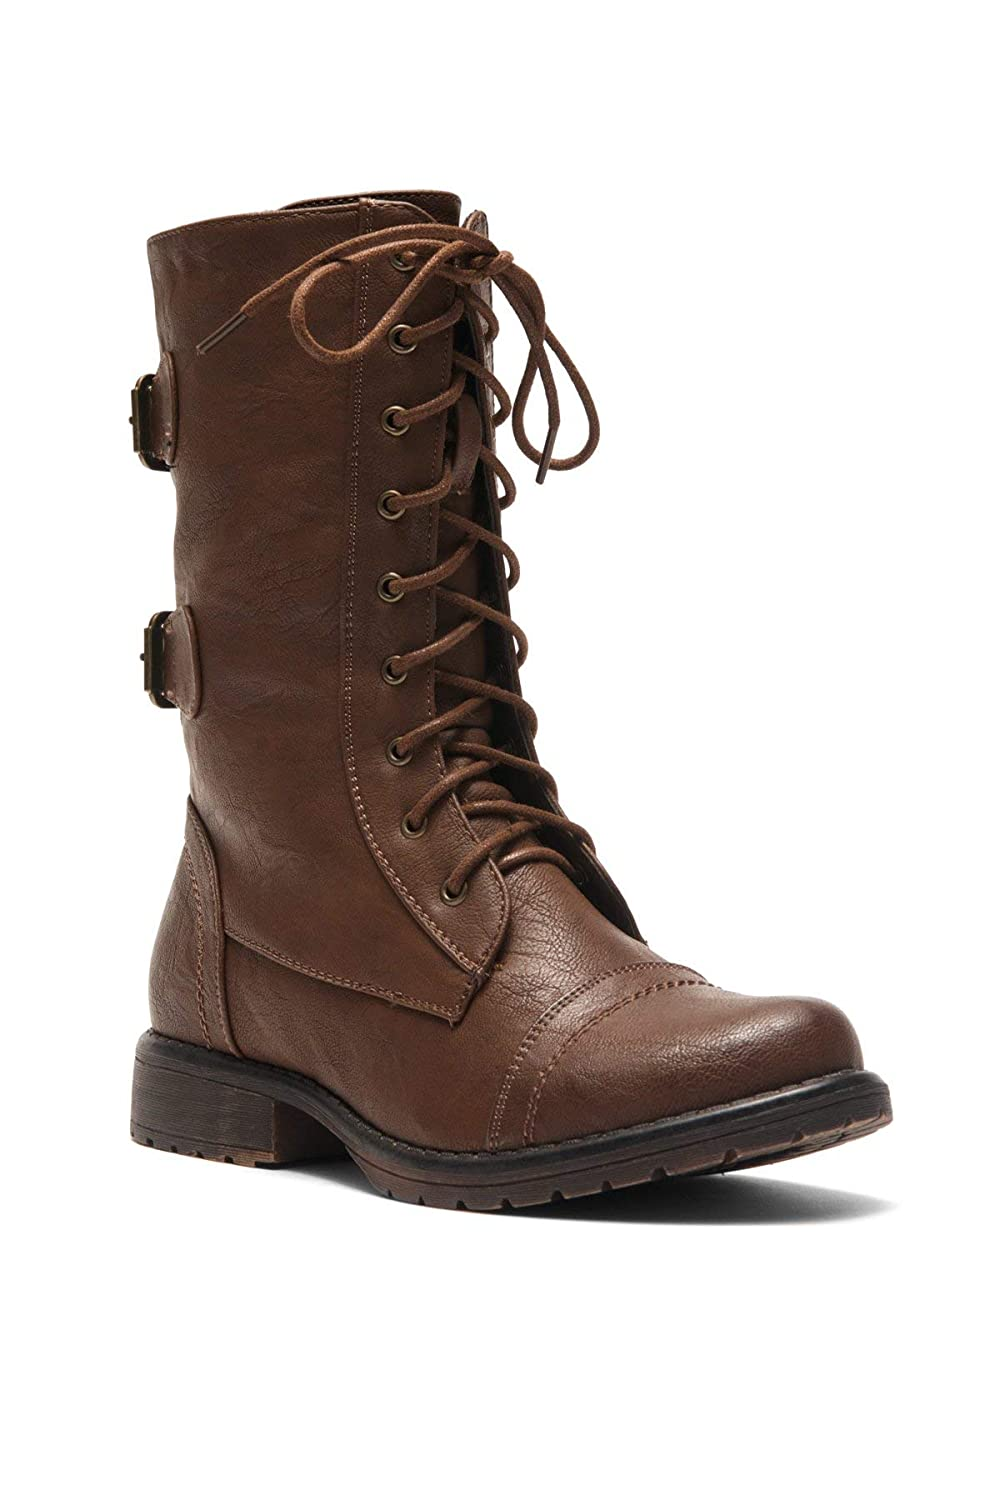 4caad261719 Herstyle Florence2 Women's Ankle Lace Up Military Combat Booties Mid Calf  Boots